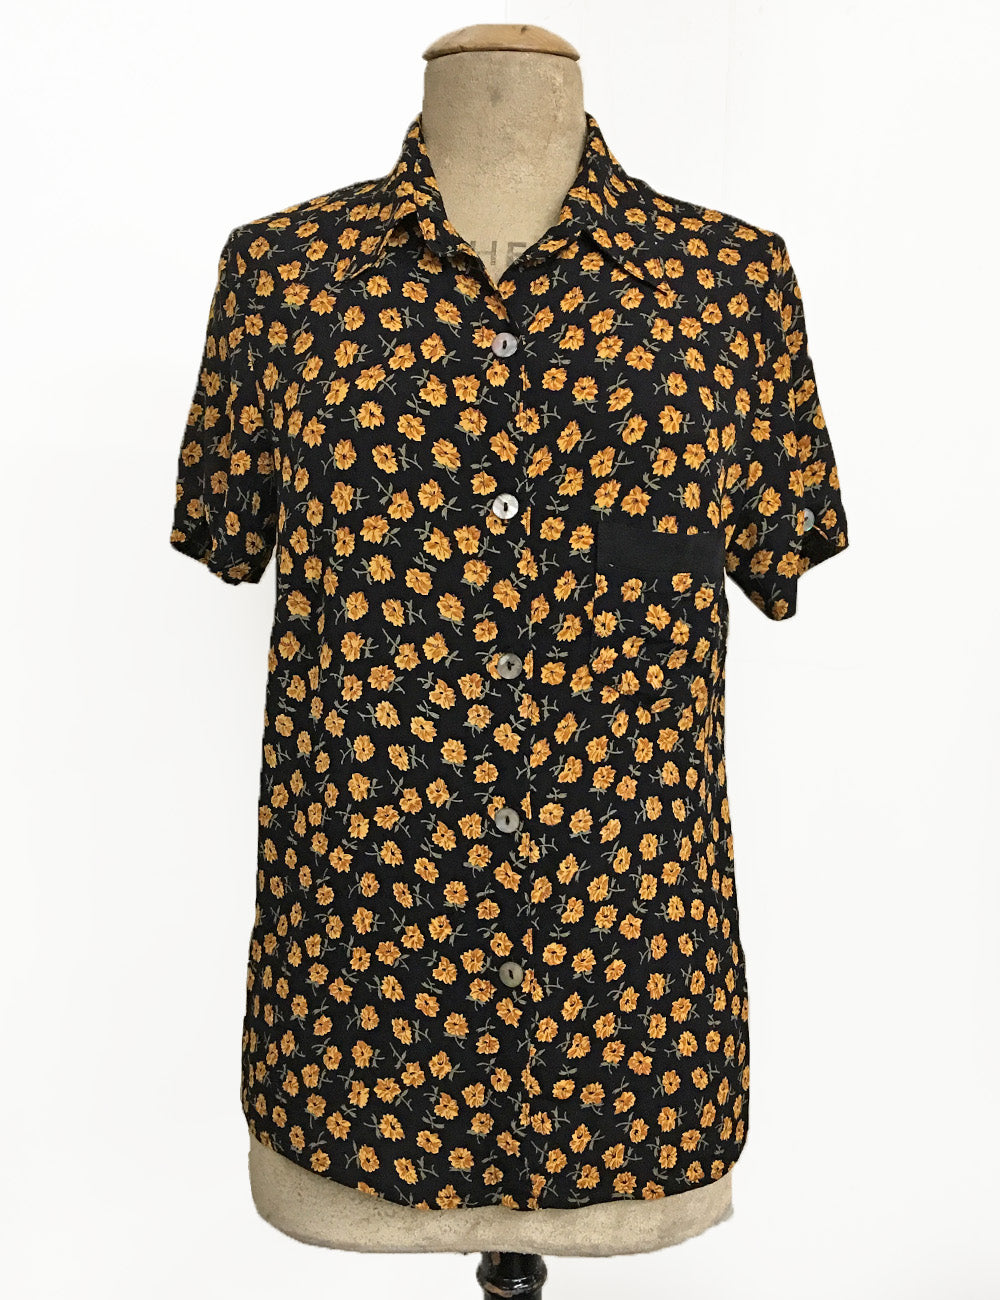 Dandelion Print Button Up Short Sleeve Camp Shirt